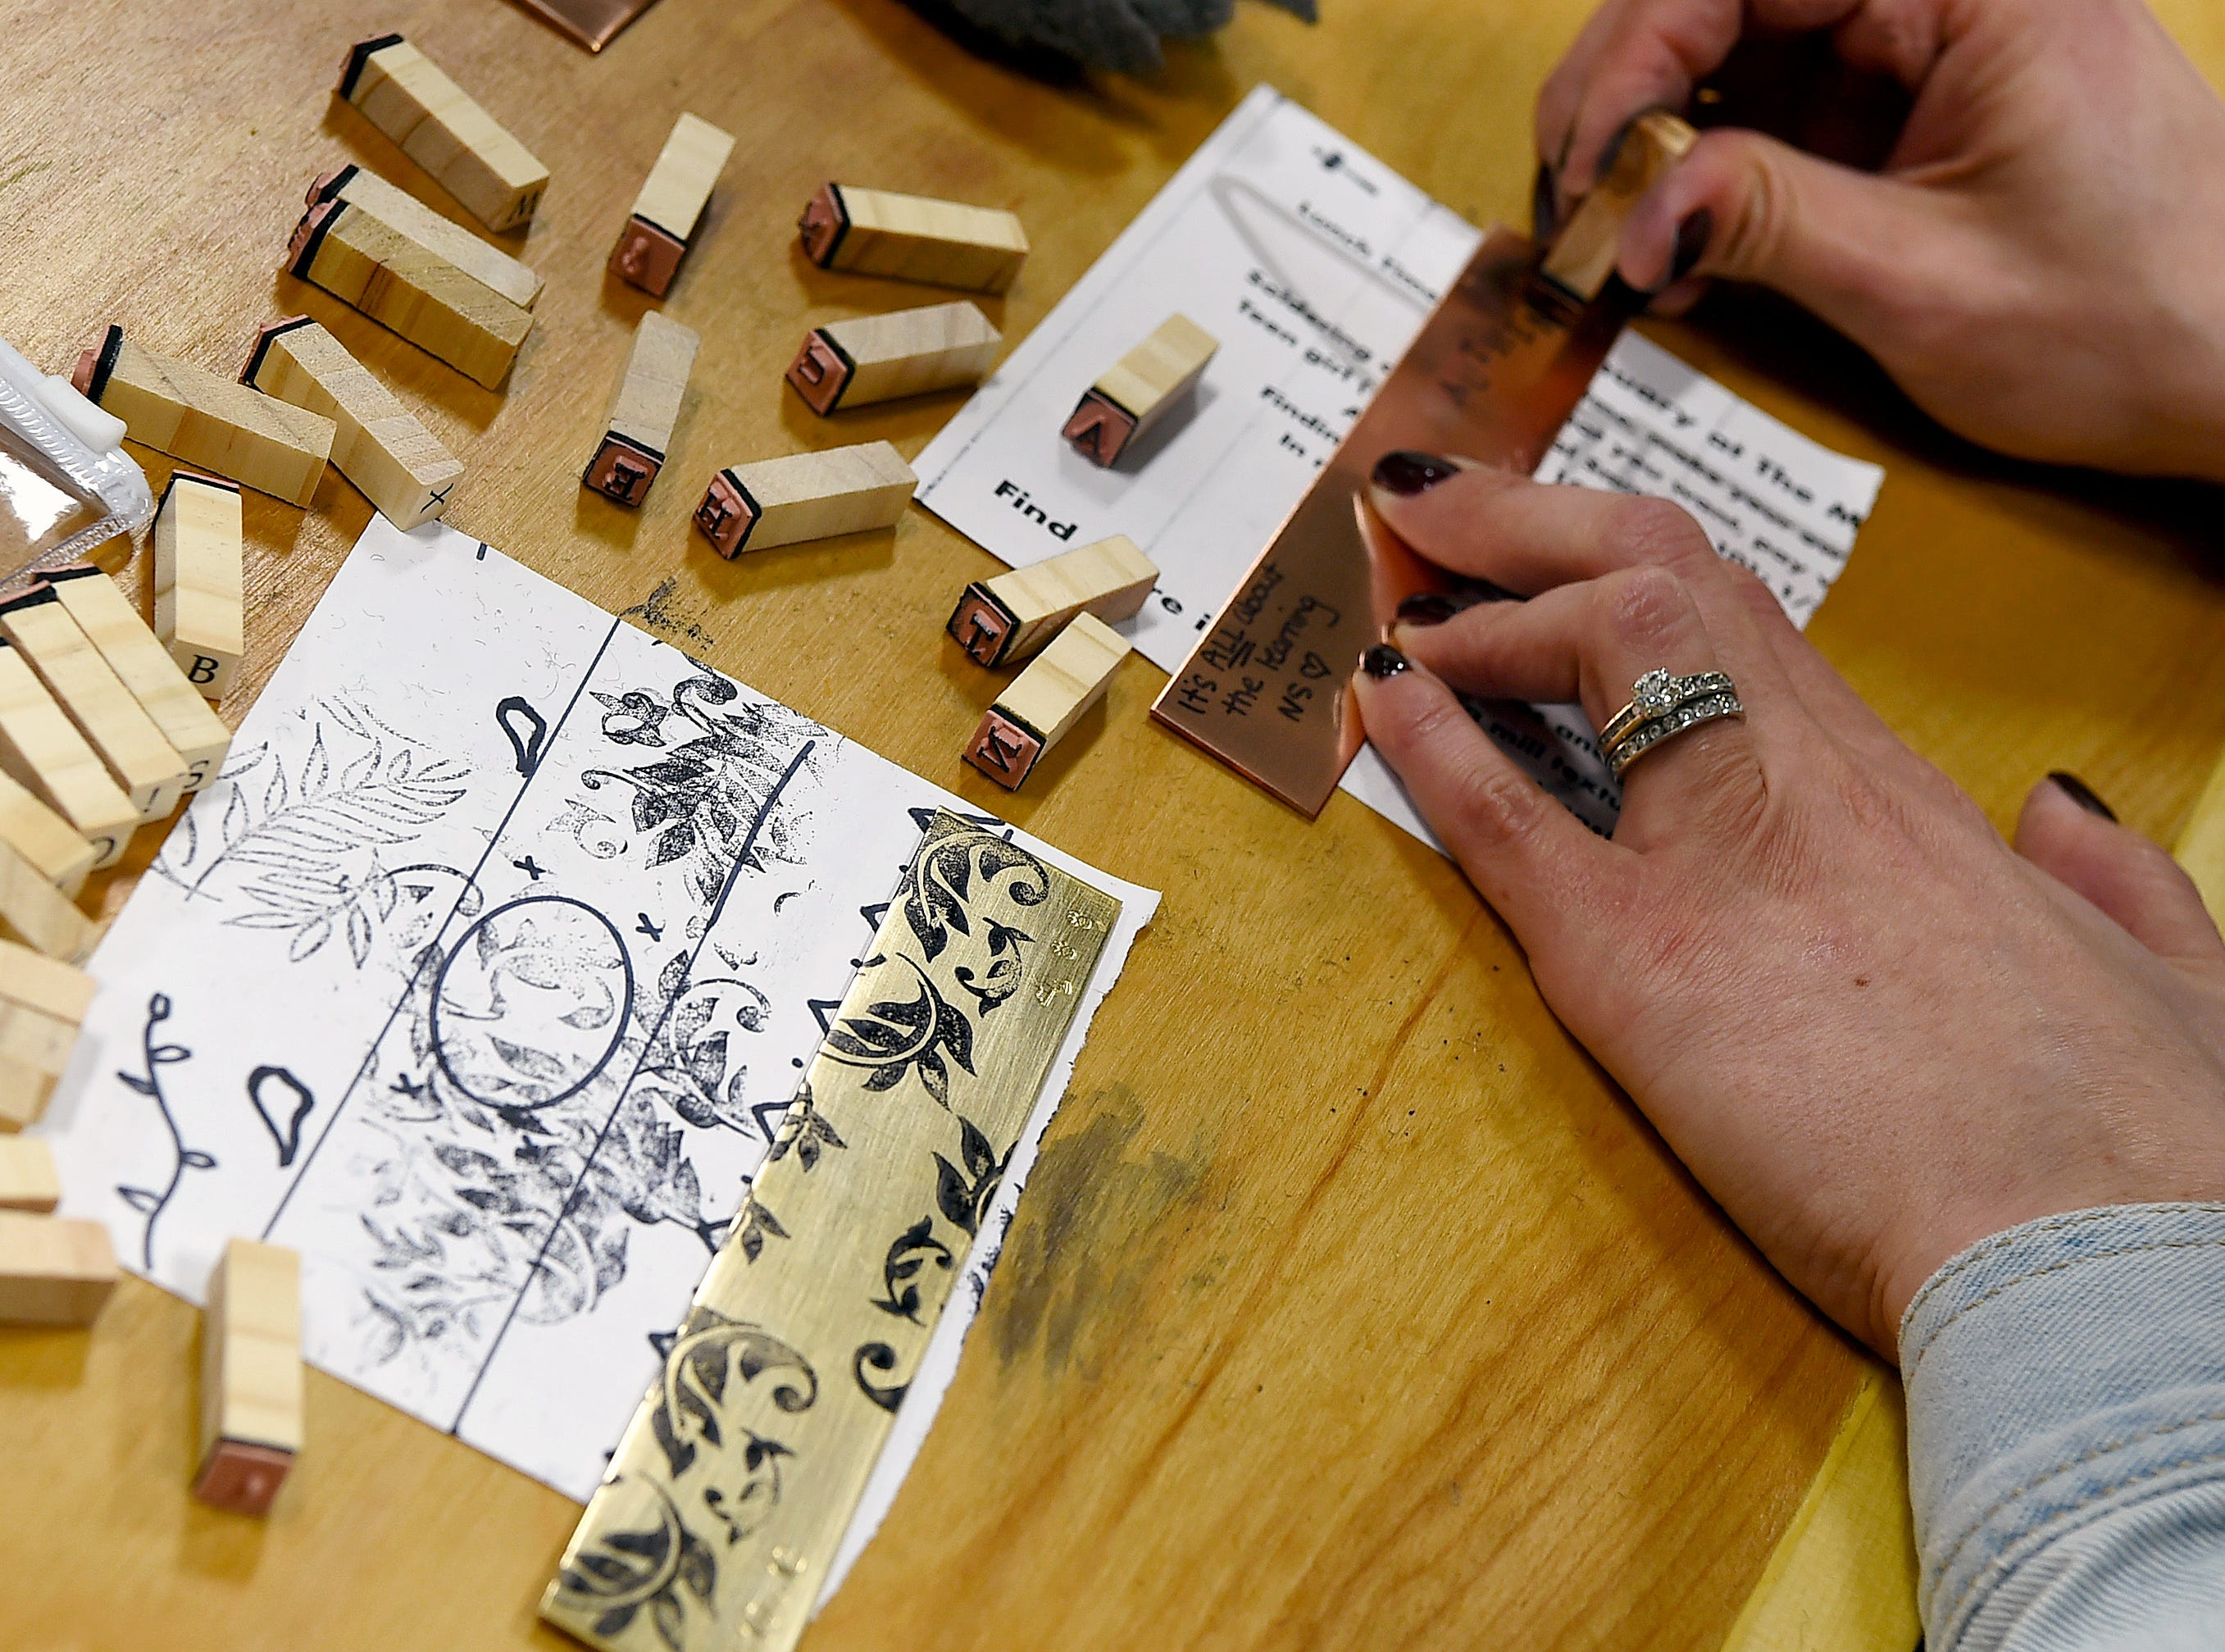 A student works on a project at The Metal Smithery in the South Hill Business Campus on Danby Road. Founded by metalsmith Elaan Greenfield, The Metal Smithery offers a variety of creative classes.